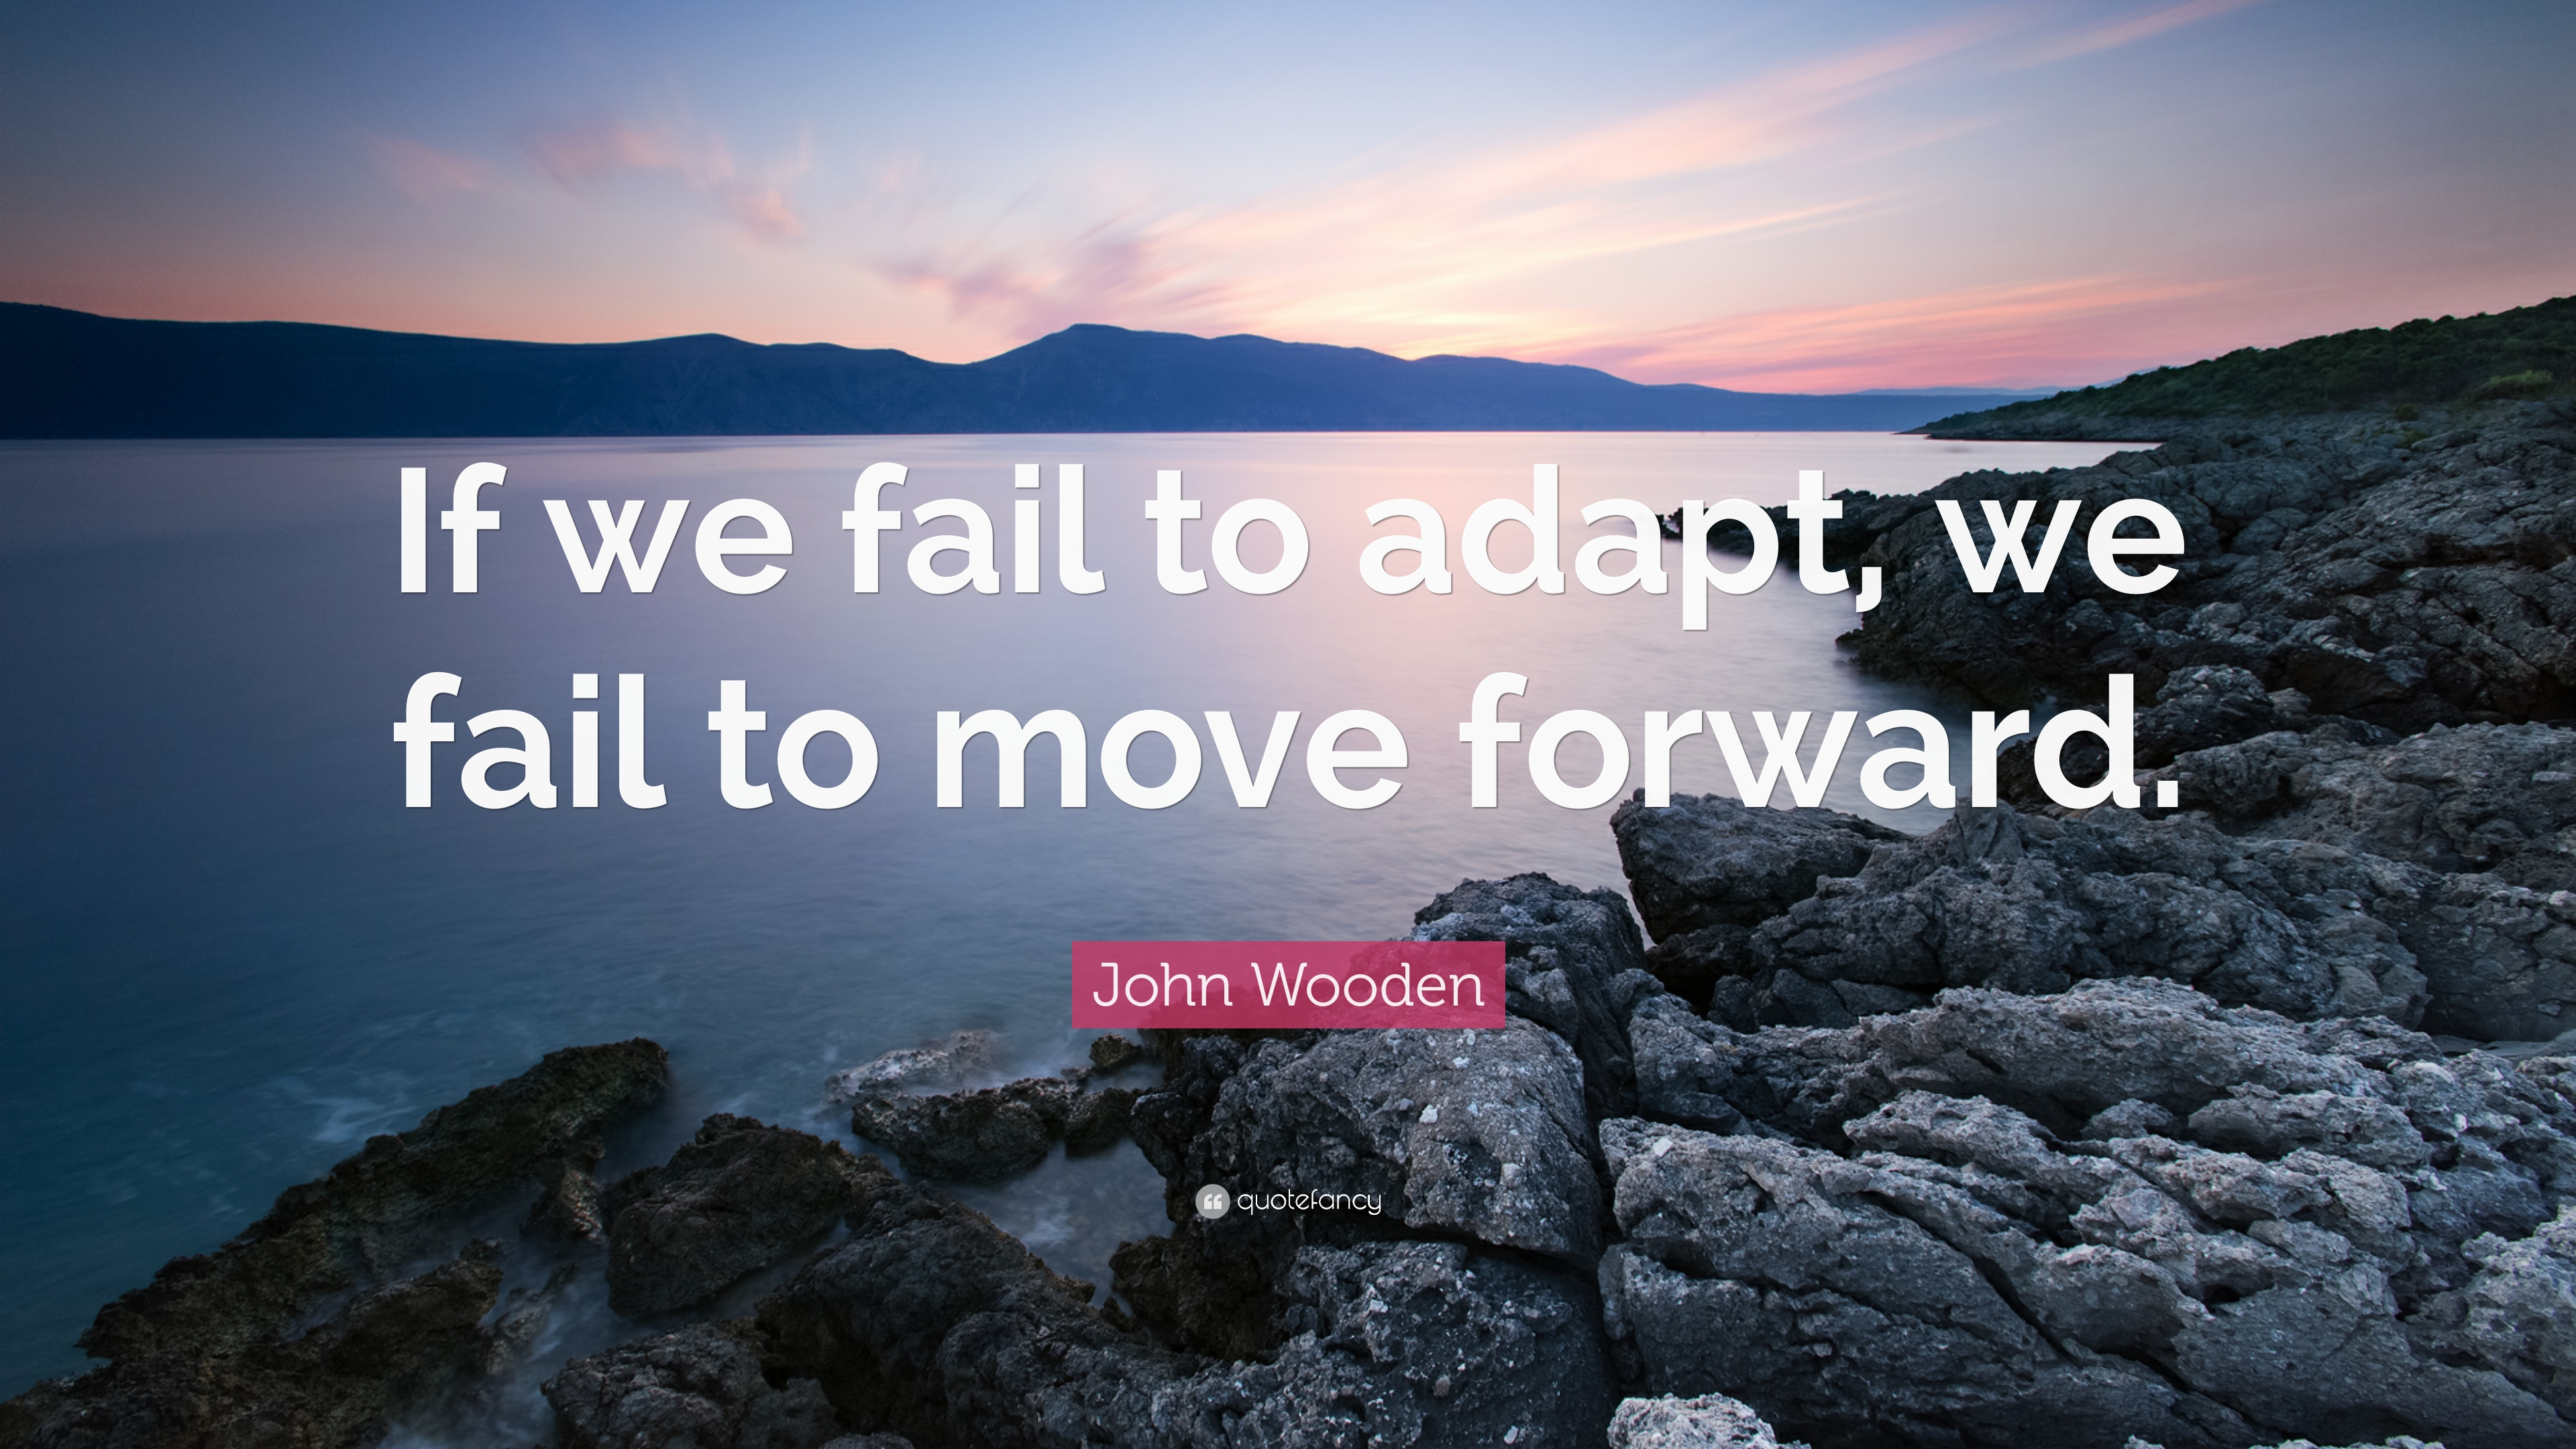 Moving Forward Quotes Moving Forward Quotes 42 Wallpapers  Quotefancy